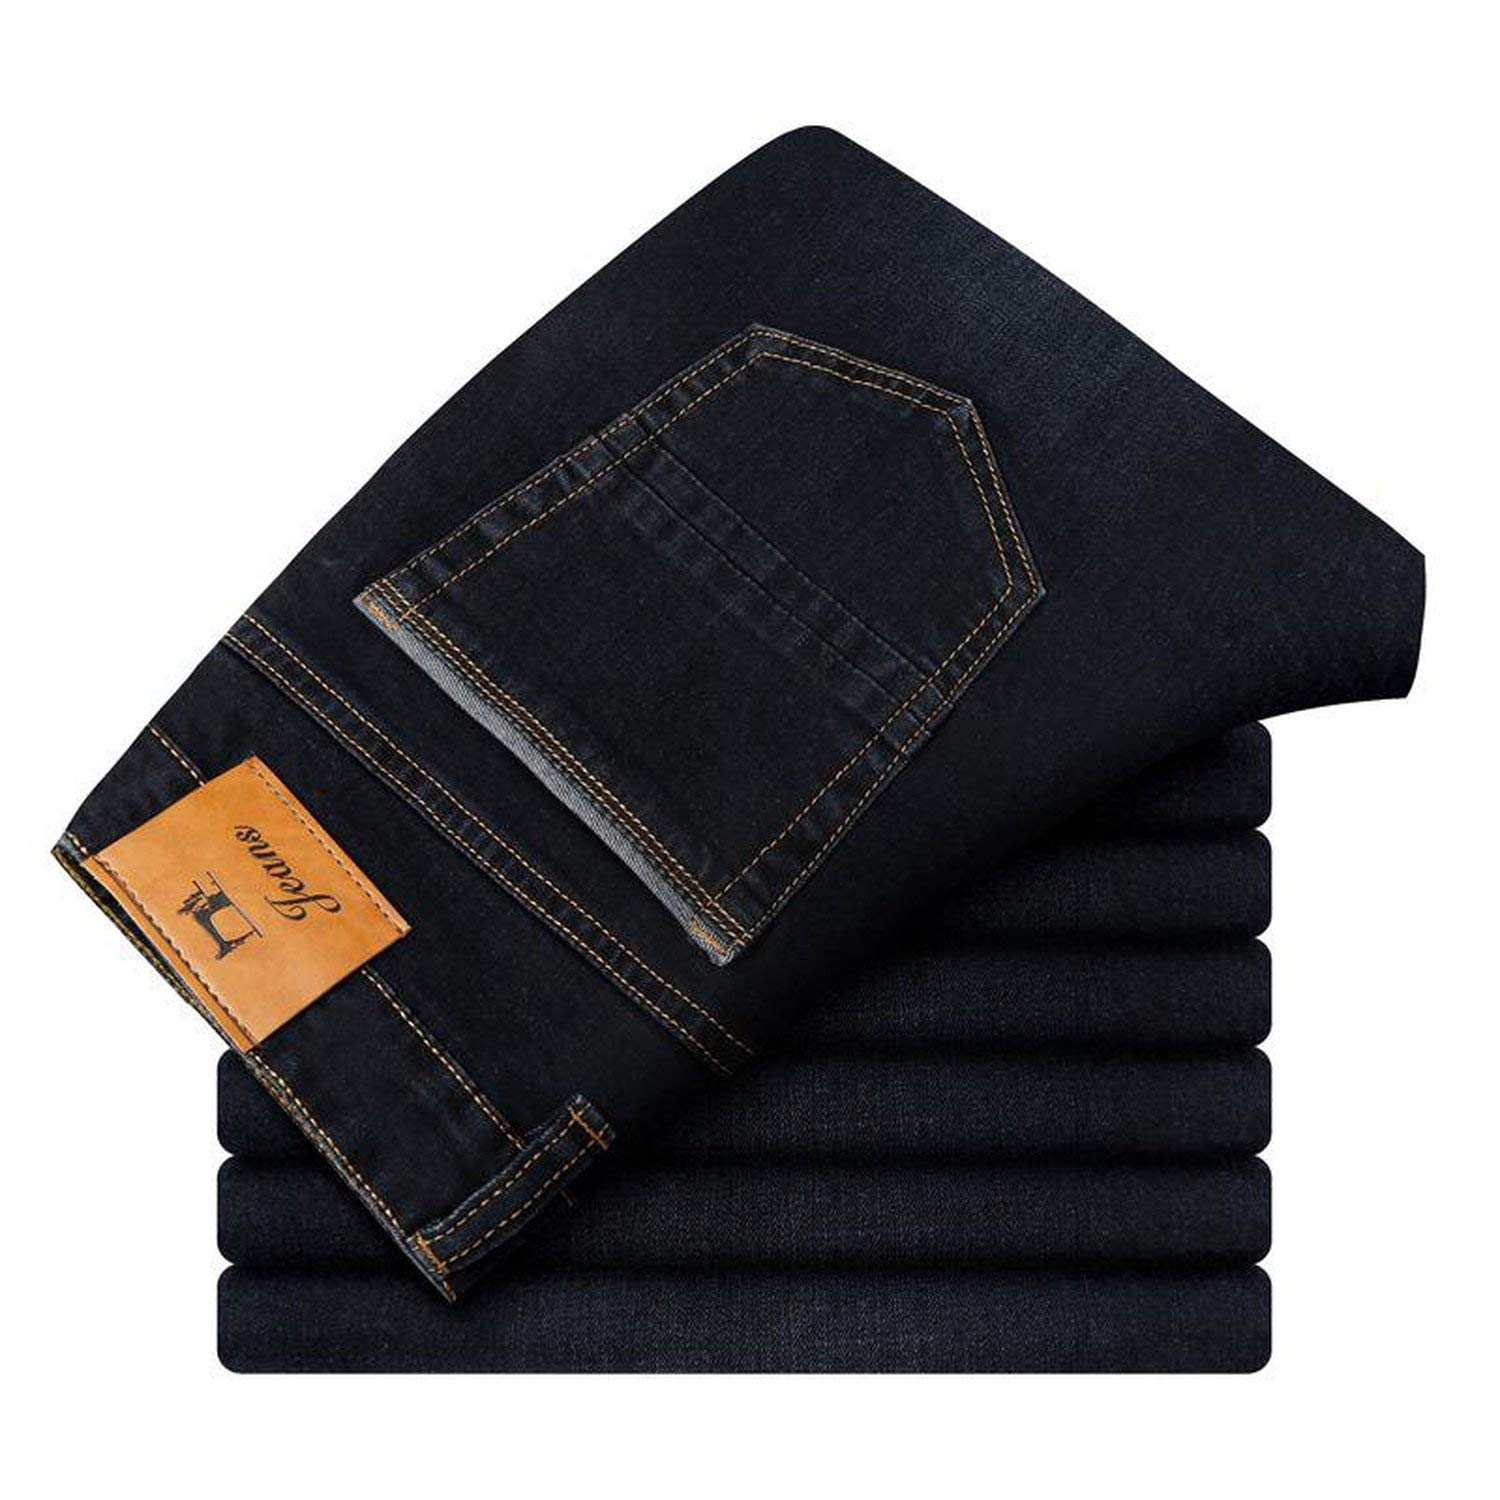 Memoriesed 2018 Autumn Winter Mens Stretch Jeans Casual Fit Loose Relax Denim Trousers Pants